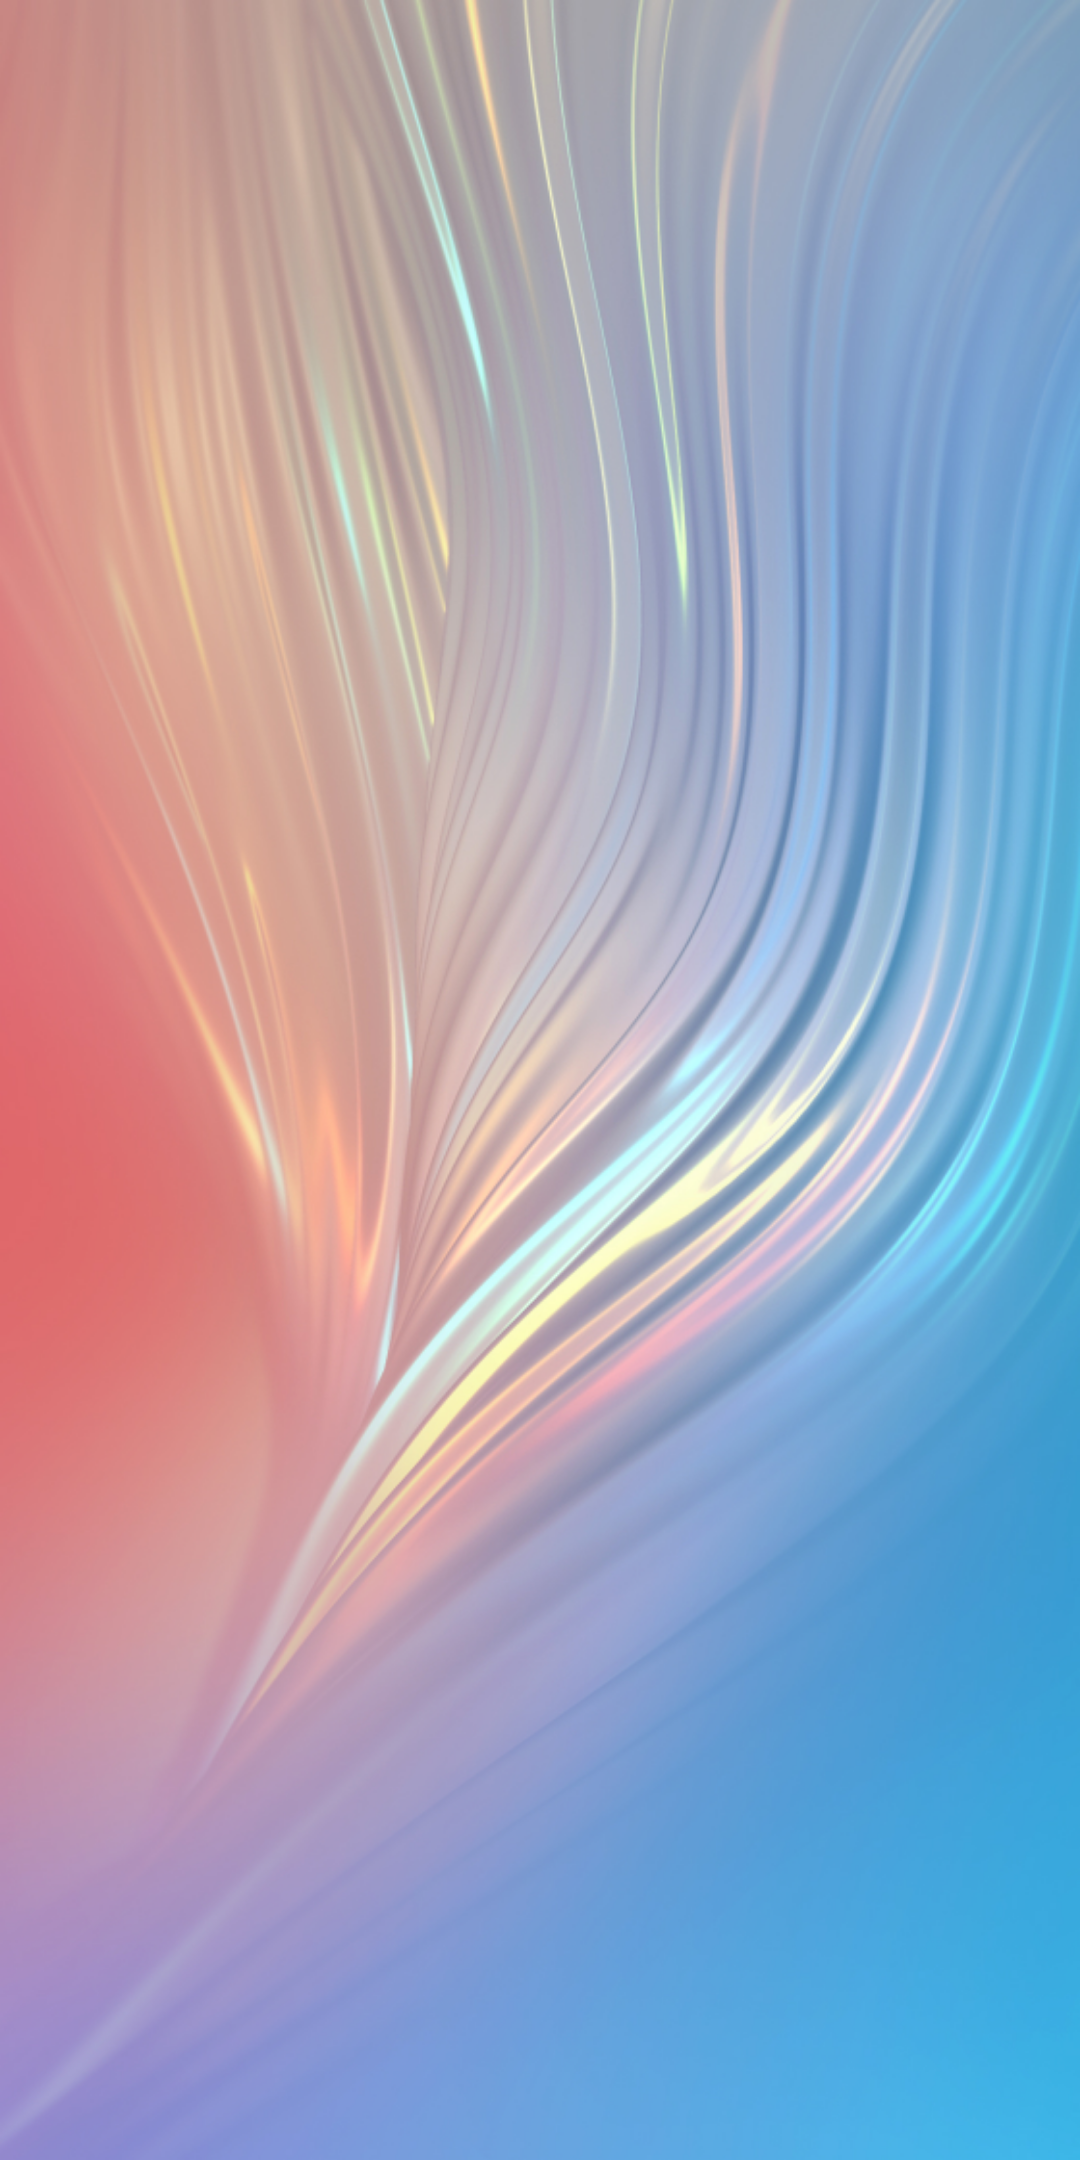 Get the Huawei P20 wallpapers in full resolution here   Android 1080x2160